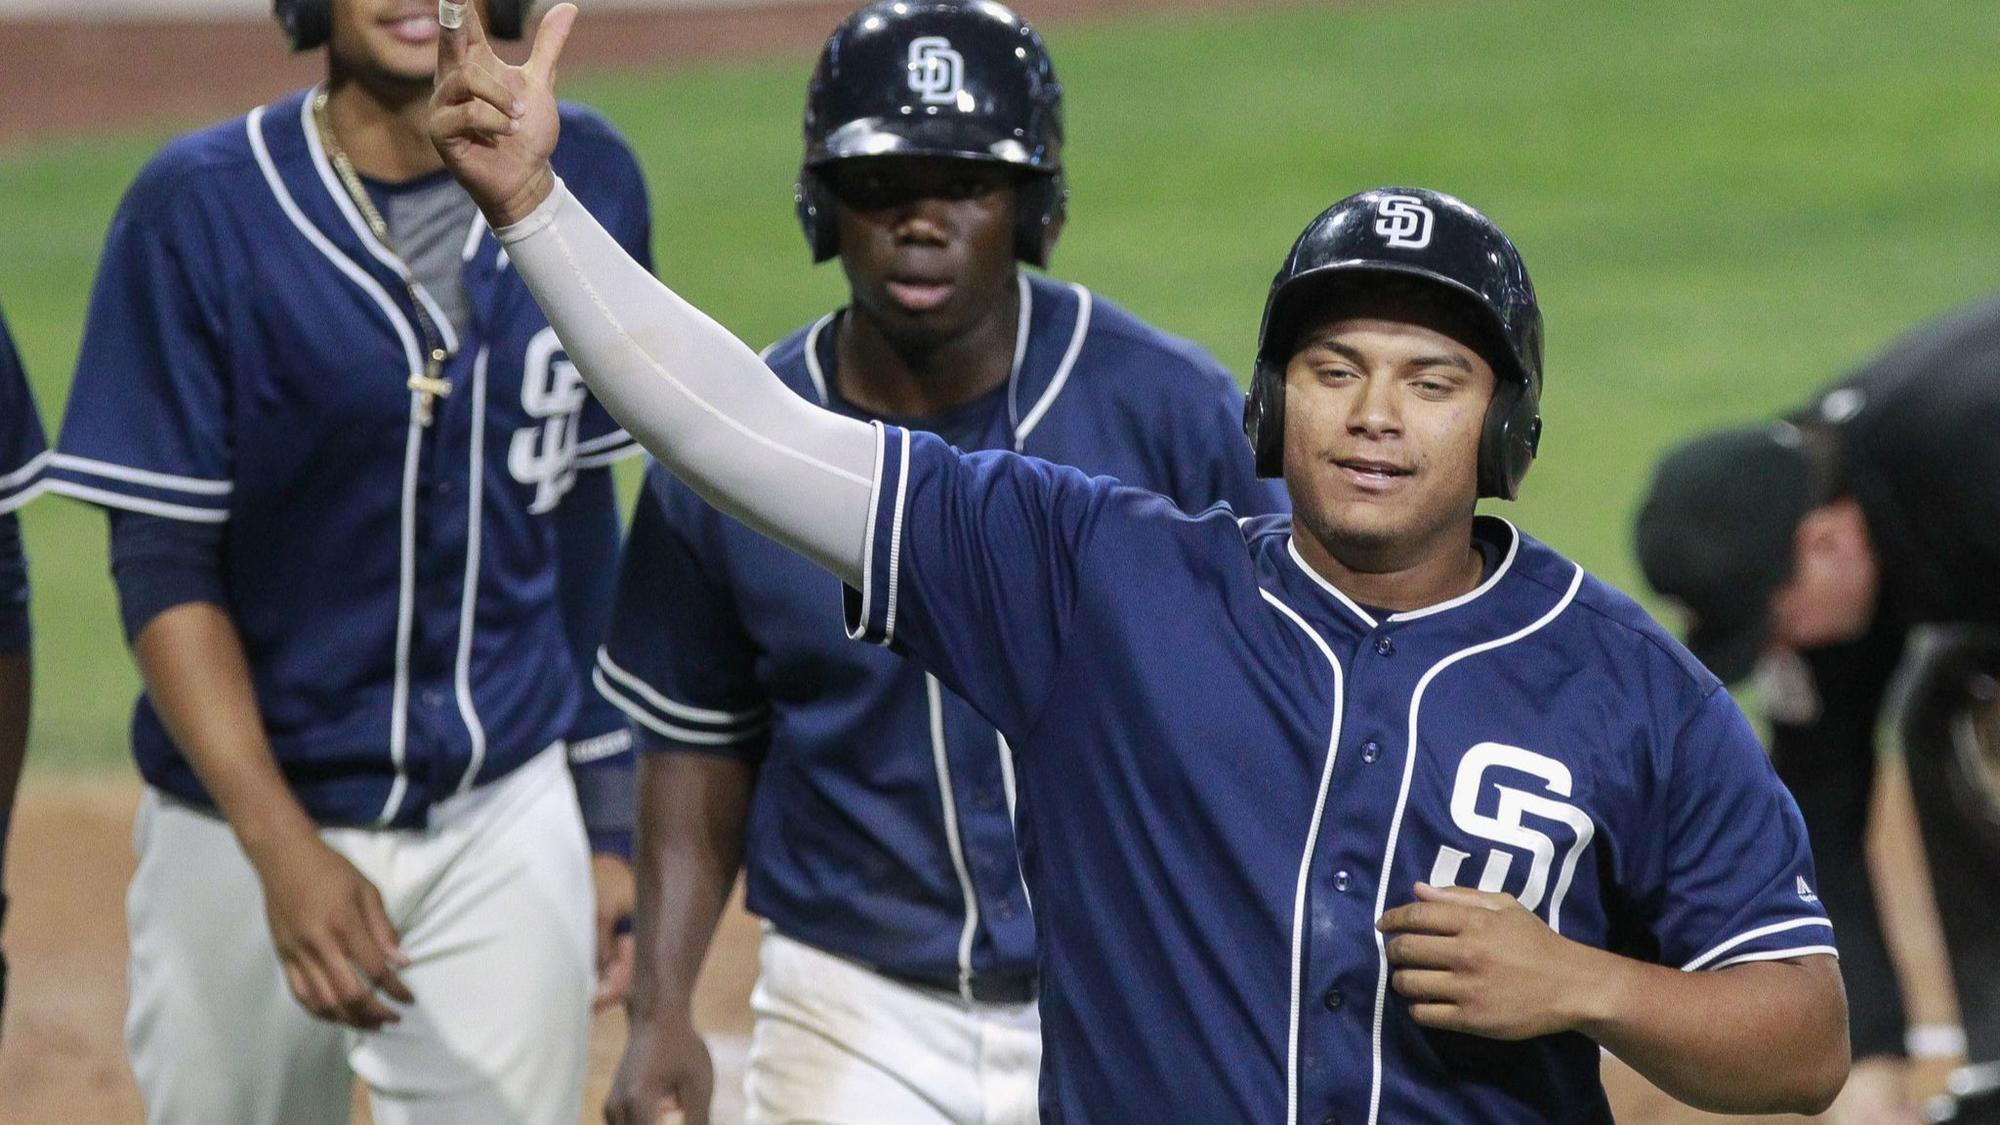 Sd-sp-two-more-homers-for-missions-josh-naylor-20180413